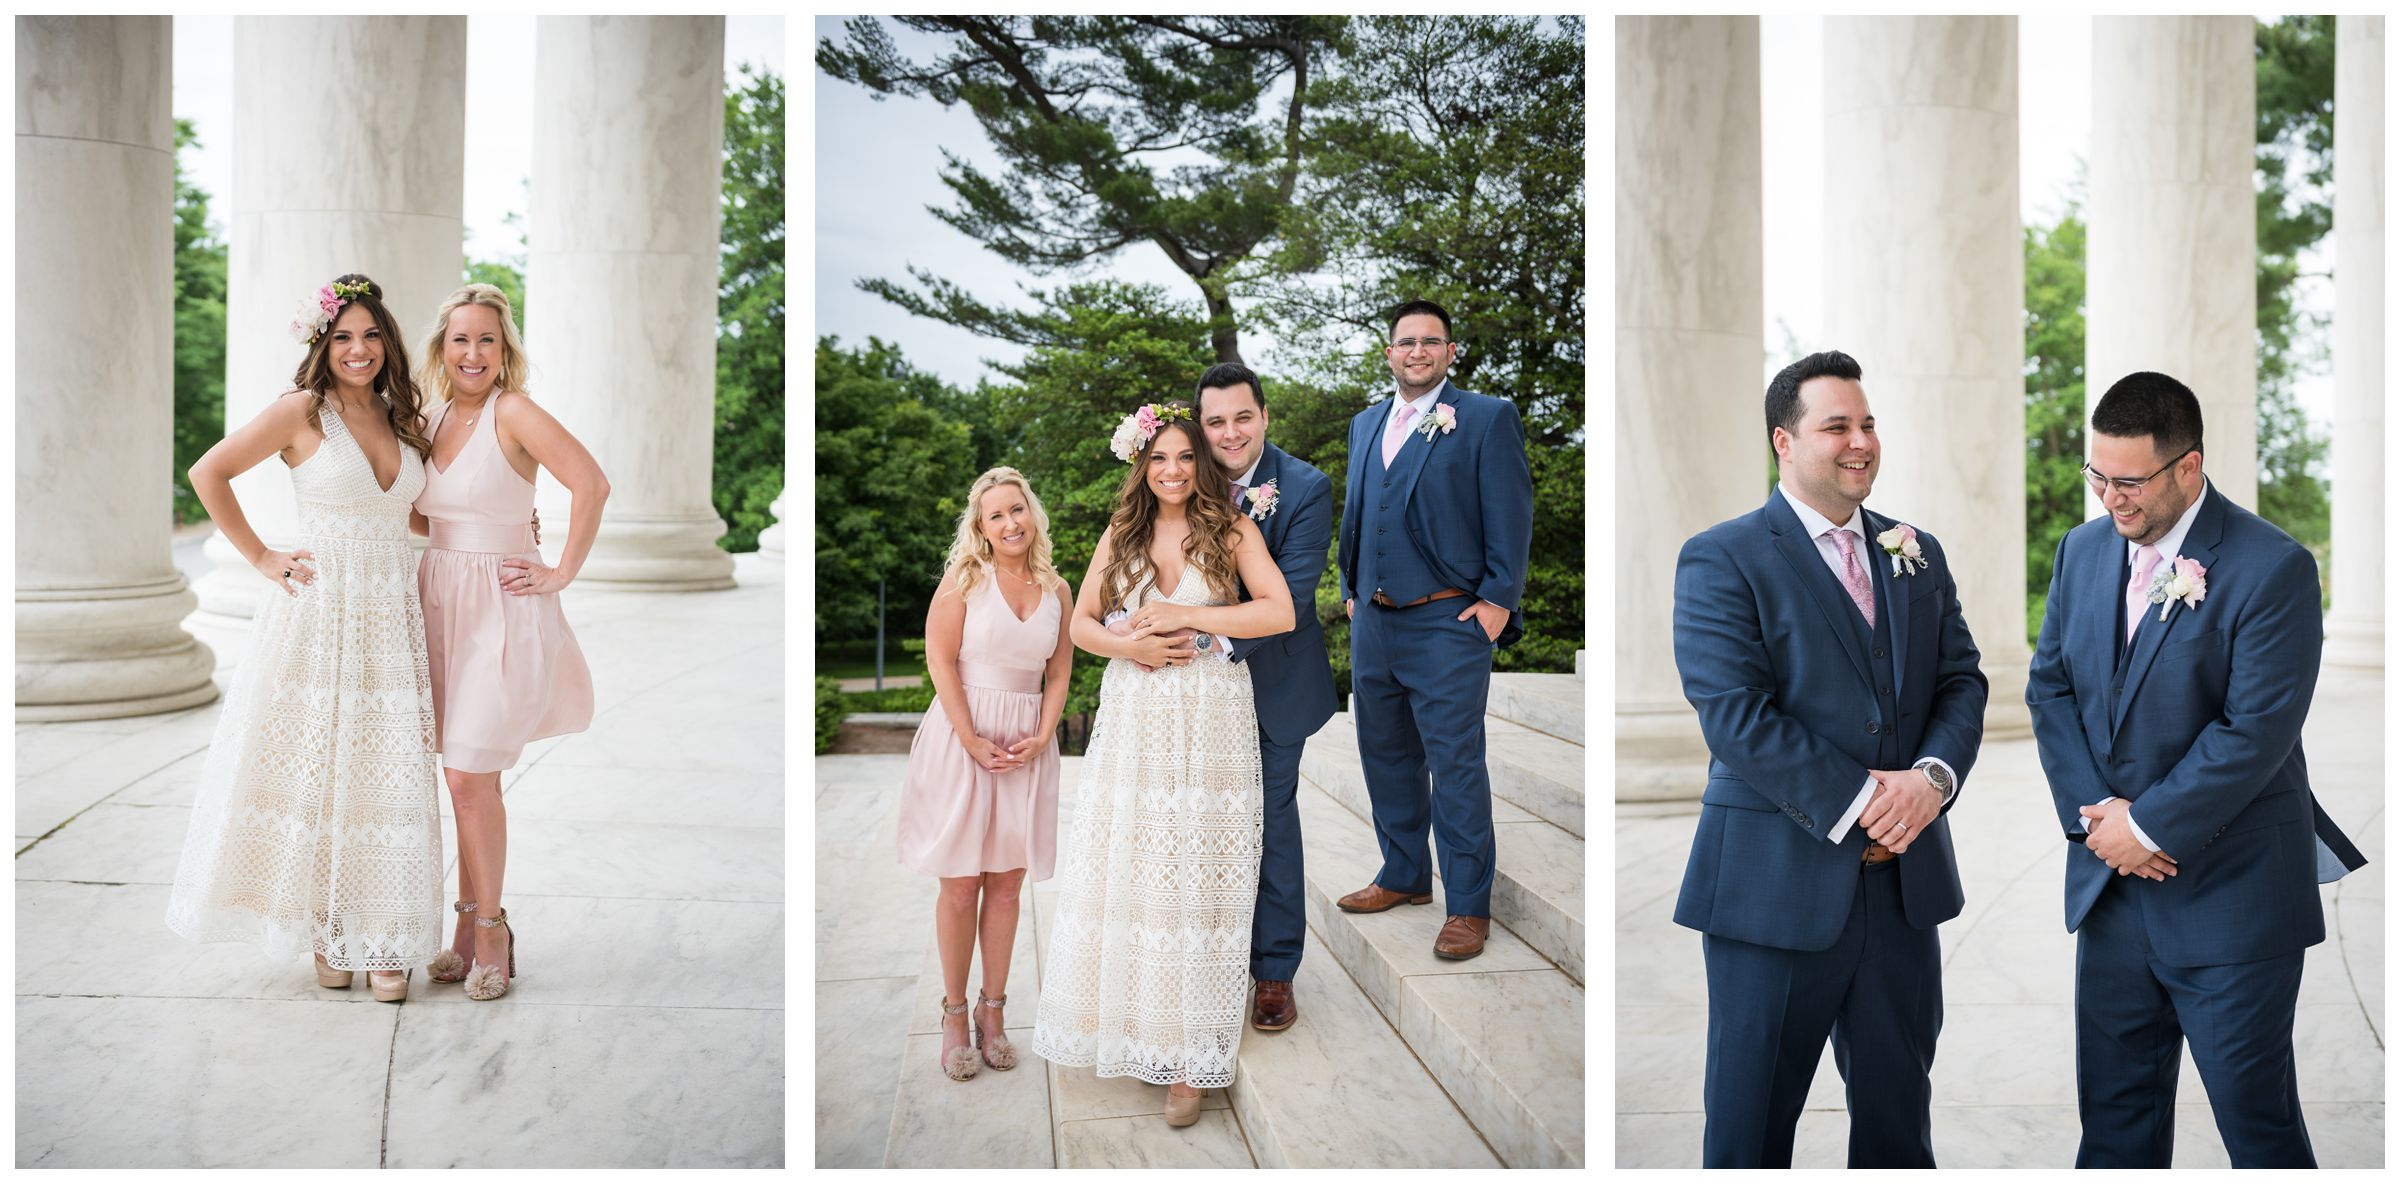 bride and groom with best man and matron of honor at Jefferson Memorial on the National Mall in Washington, D.C.